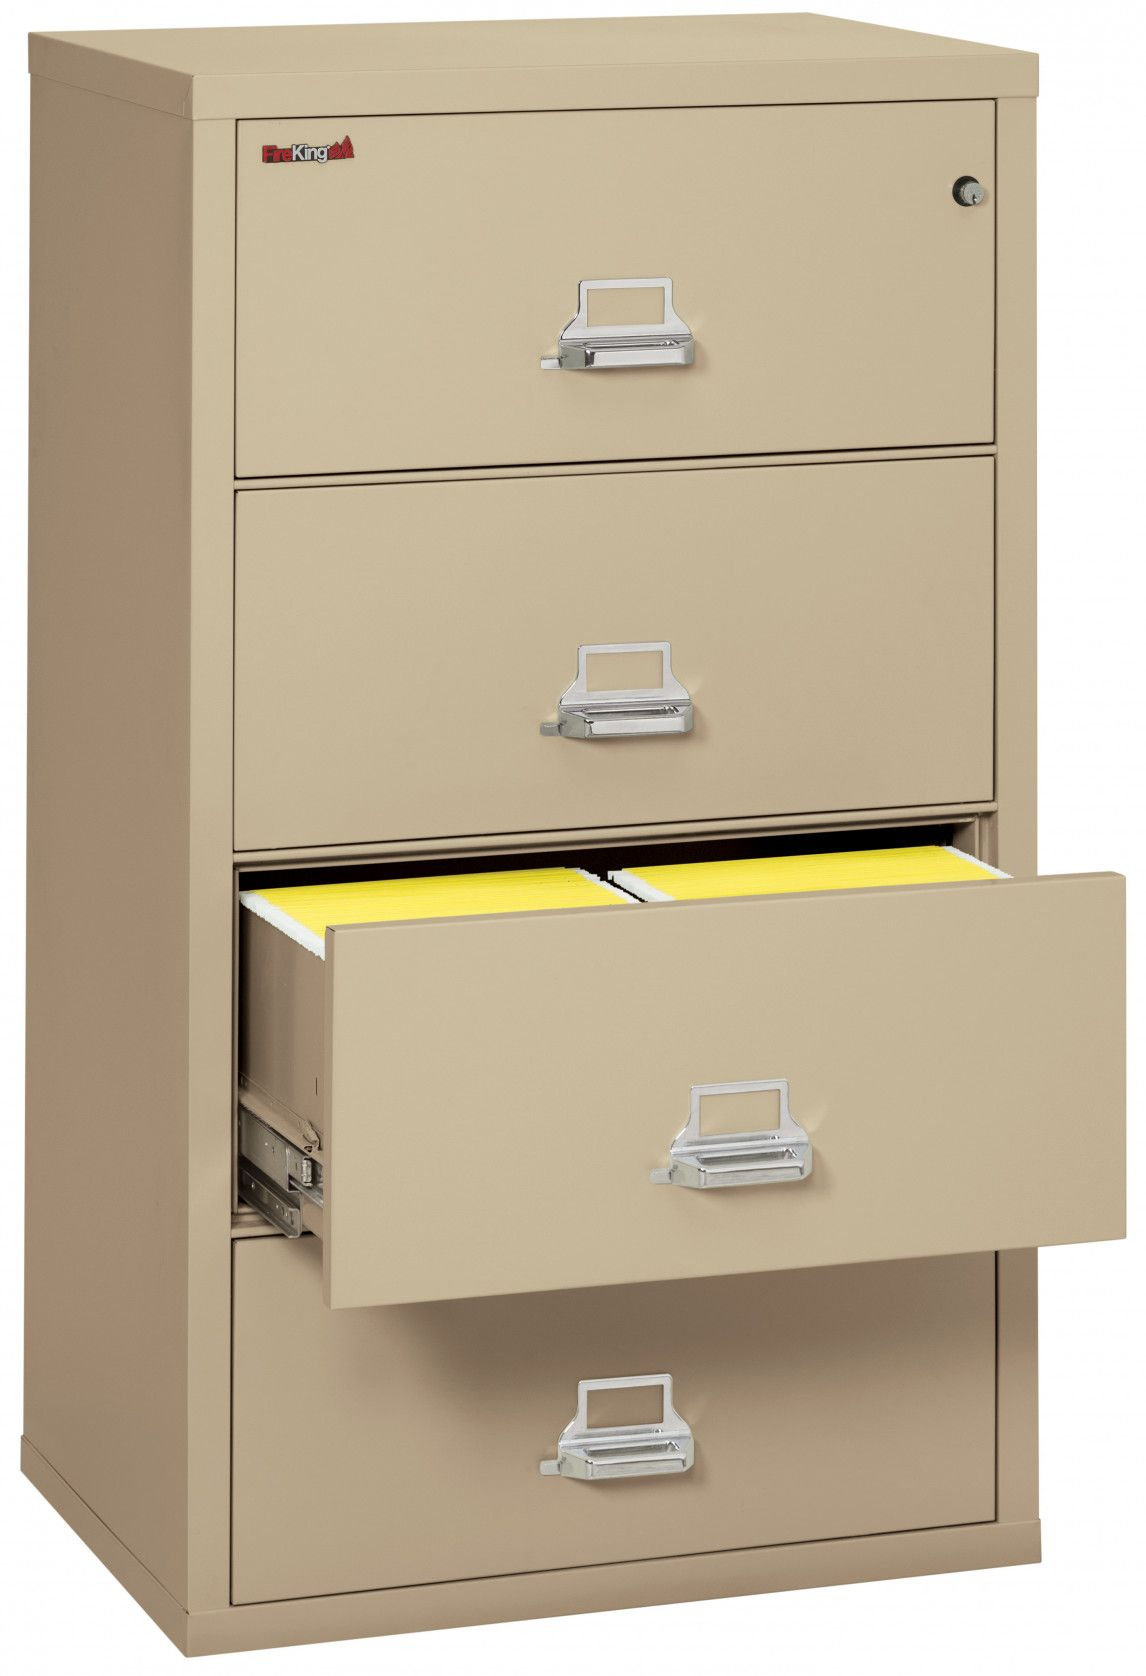 70 Staples 2 Drawer Lateral File Cabinet Kitchen Cabinets